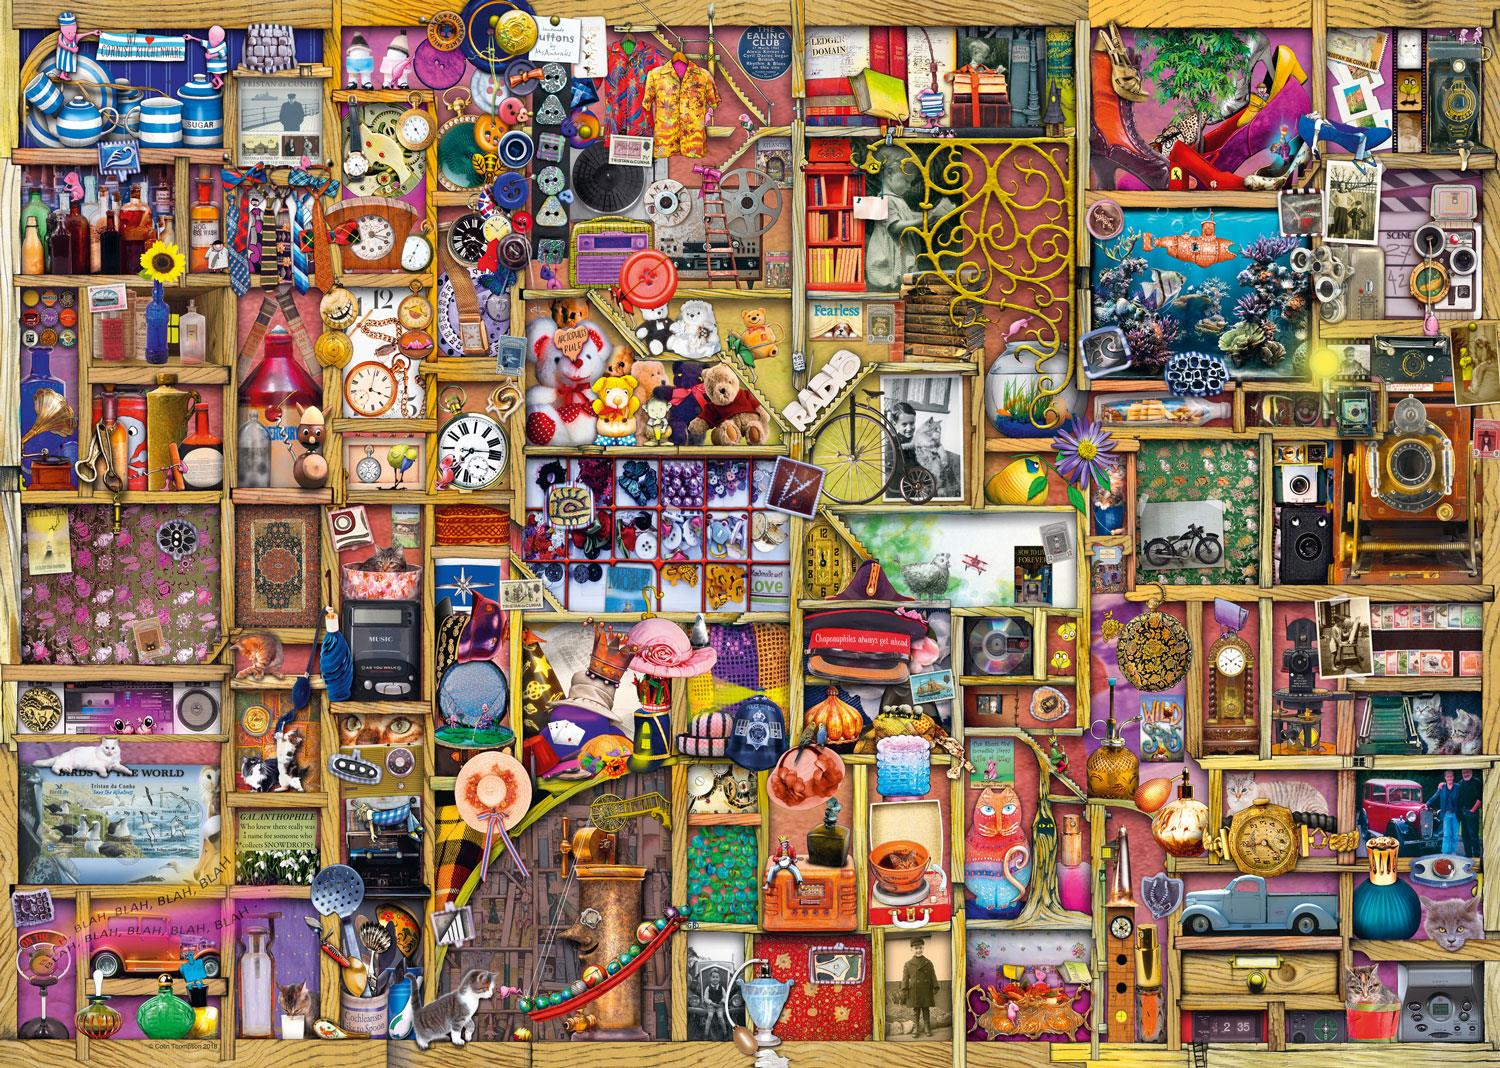 Ravensburger The Curious Cupboard No.6 - The Collector's Cupboard Jigsaw Puzzle (1000 Pieces)